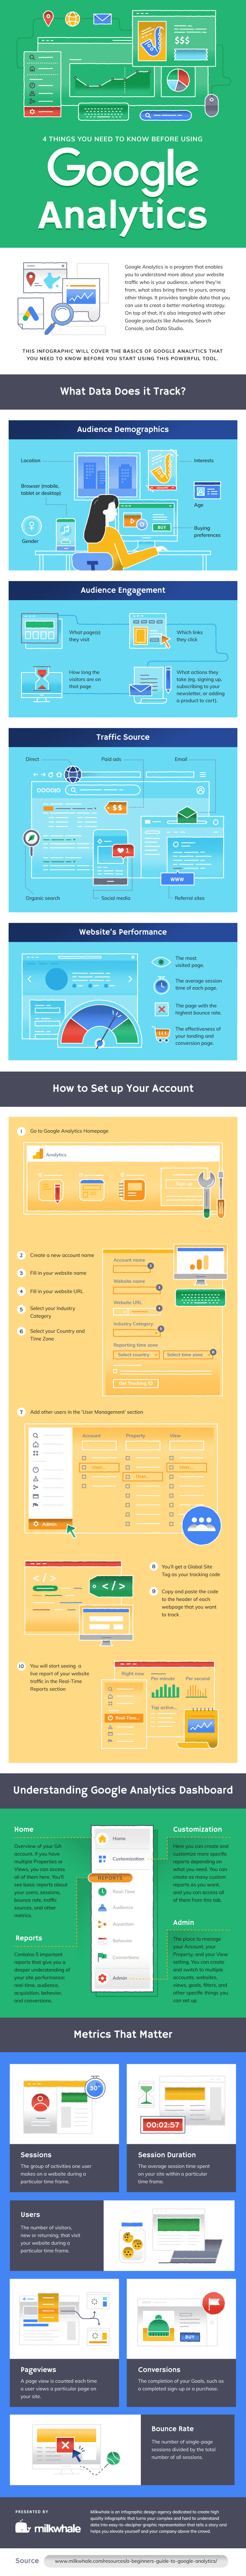 Infographic looks at key Google Analytics functions